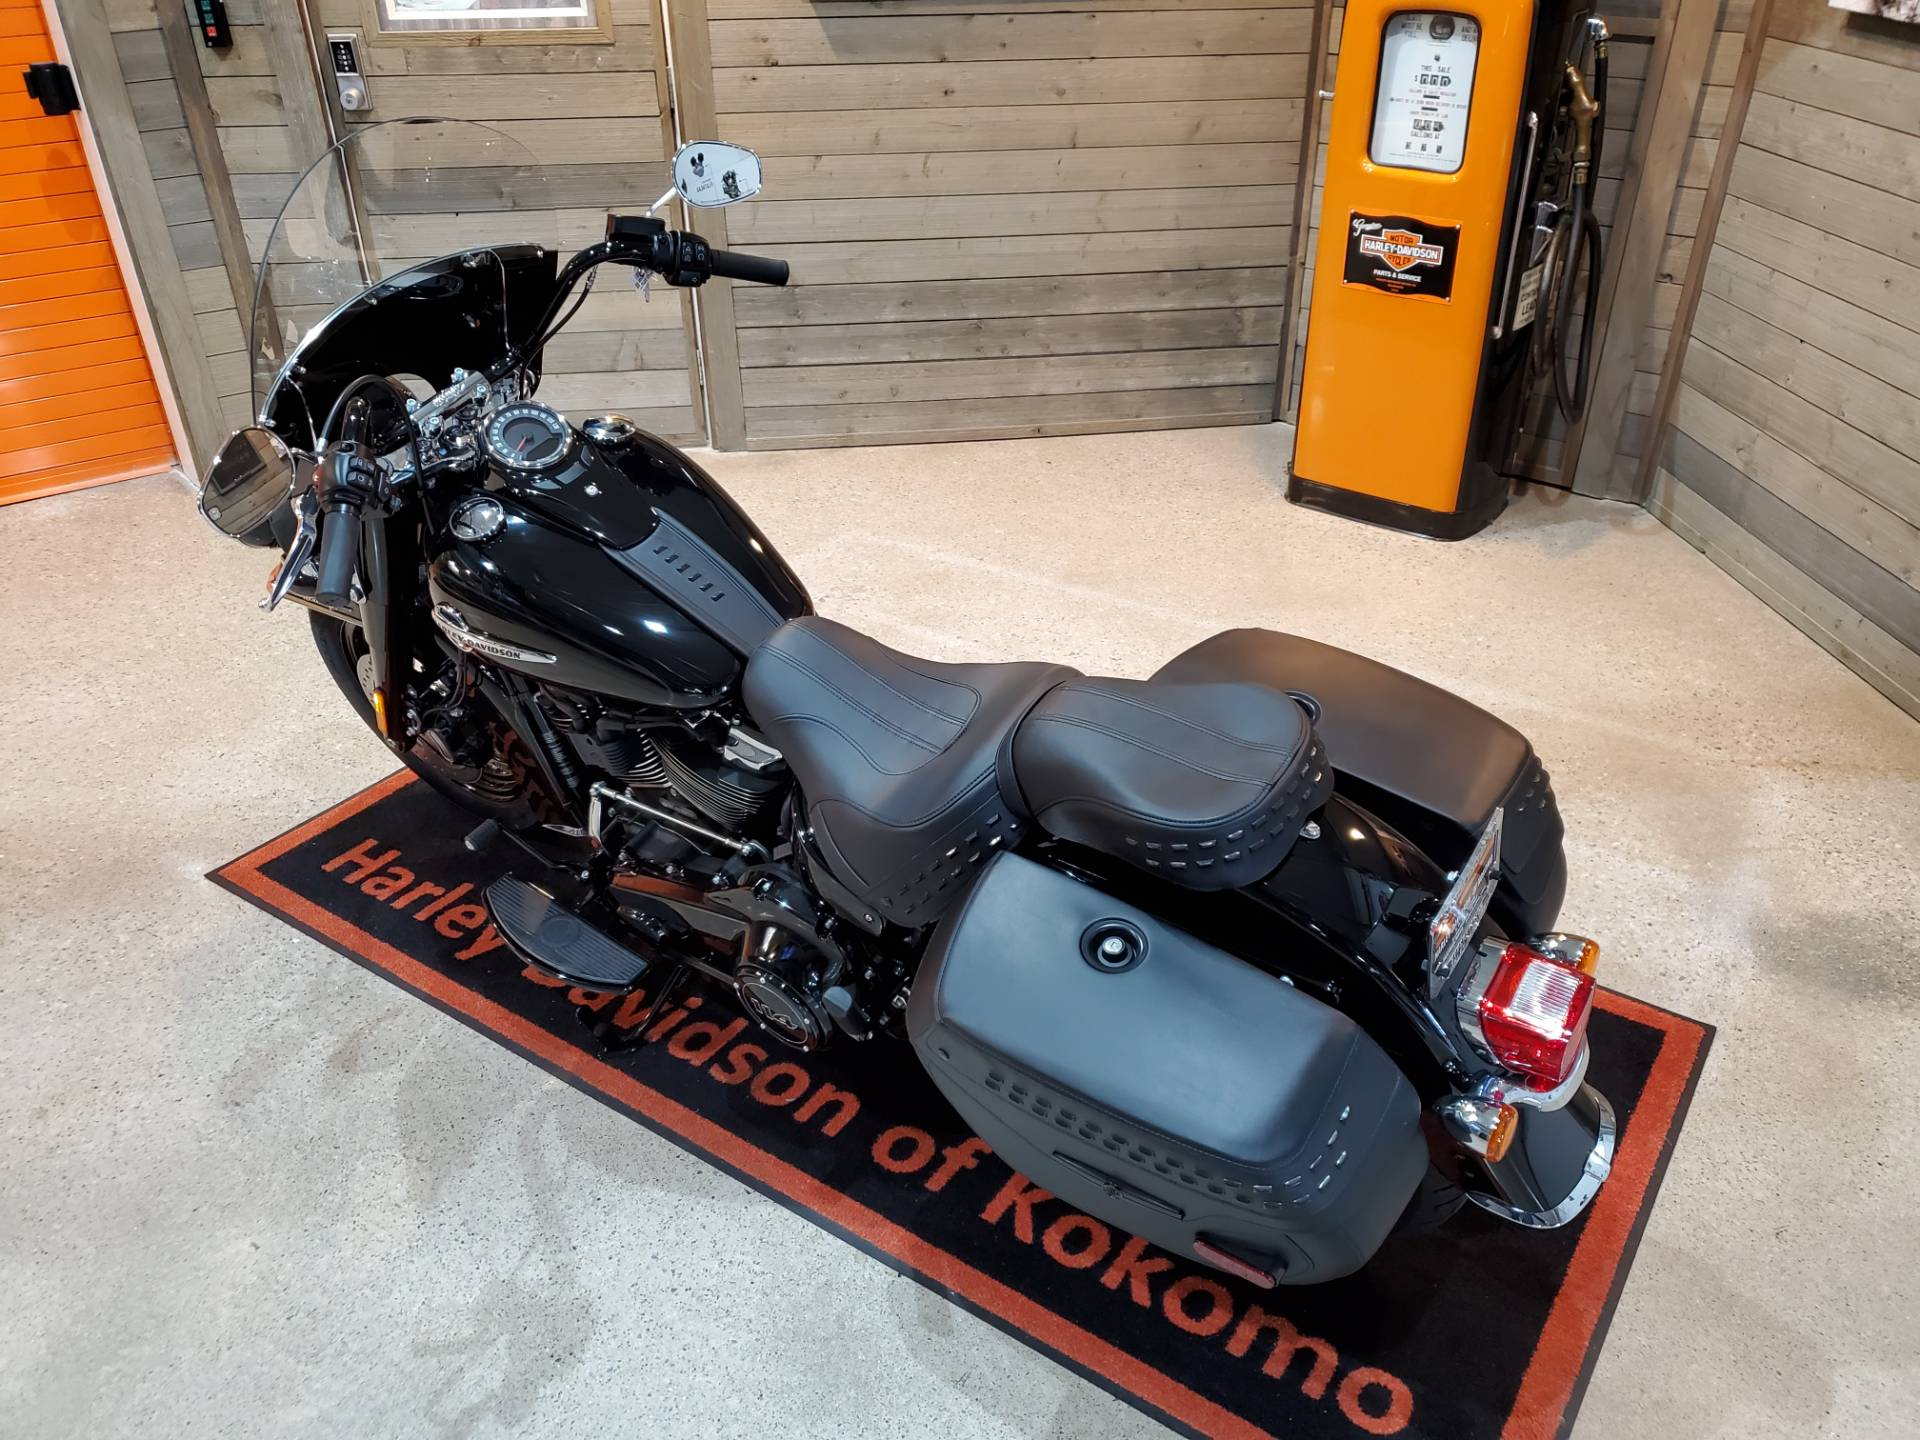 2020 Harley-Davidson Heritage Classic 114 in Kokomo, Indiana - Photo 15